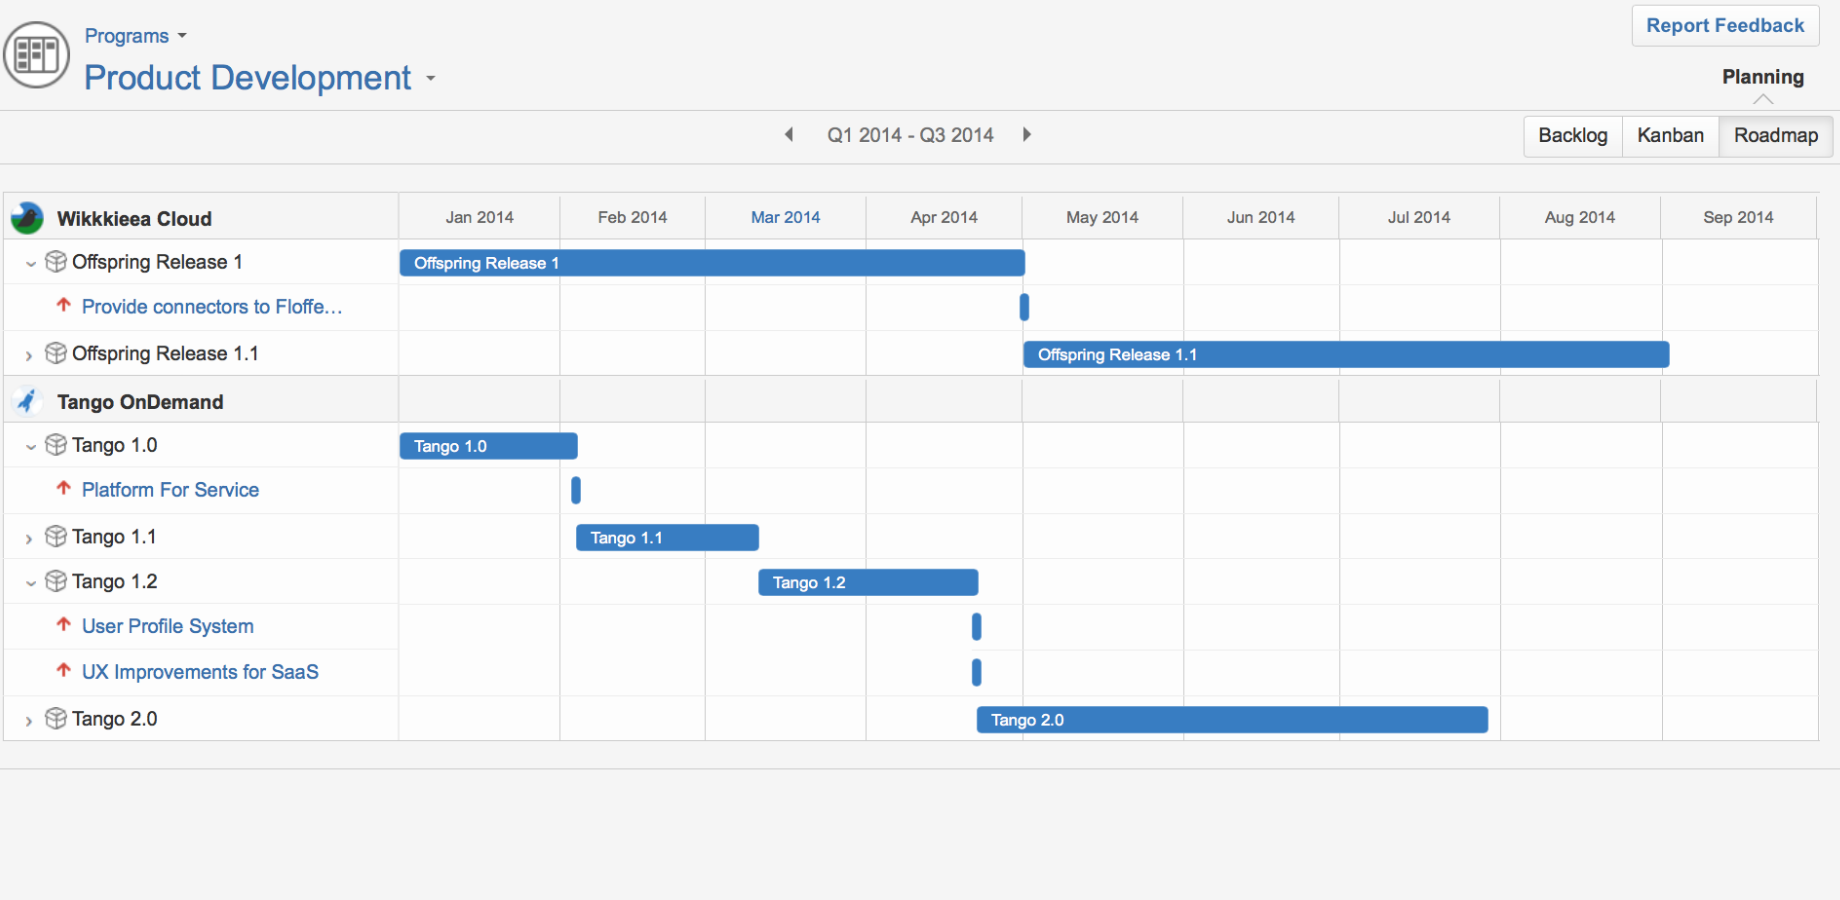 visualize your program management with the program roadmap in Tempo Planner for Atlassian's JIRA